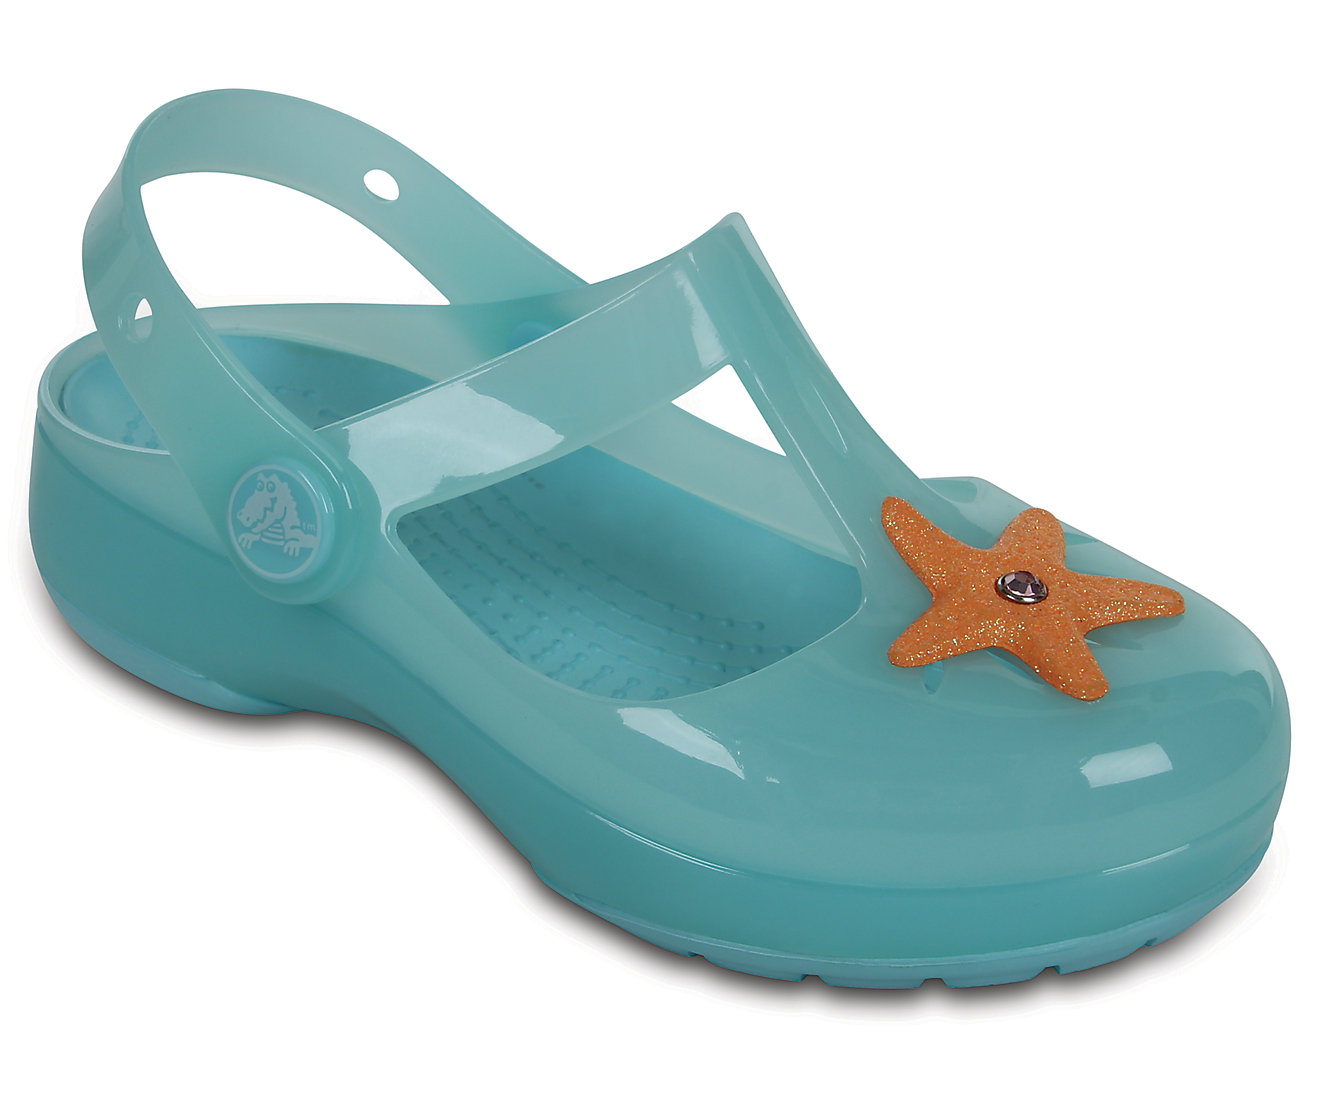 Kids' Crocs Isabella Clogs